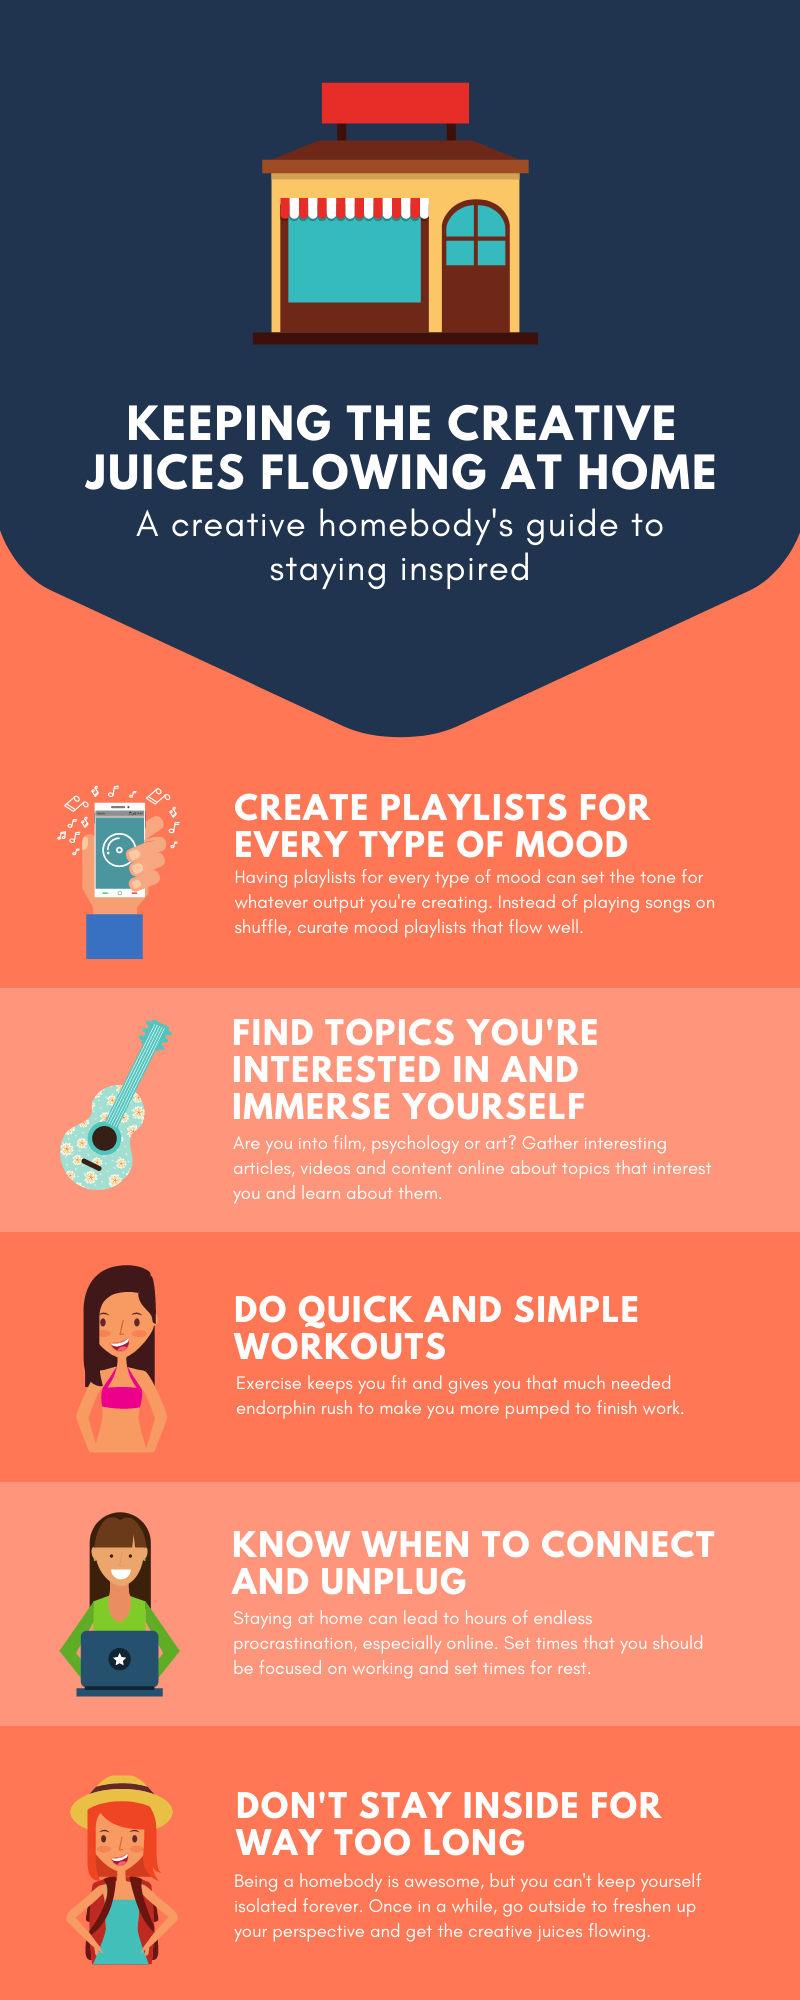 How to keep the creative juices flowing.